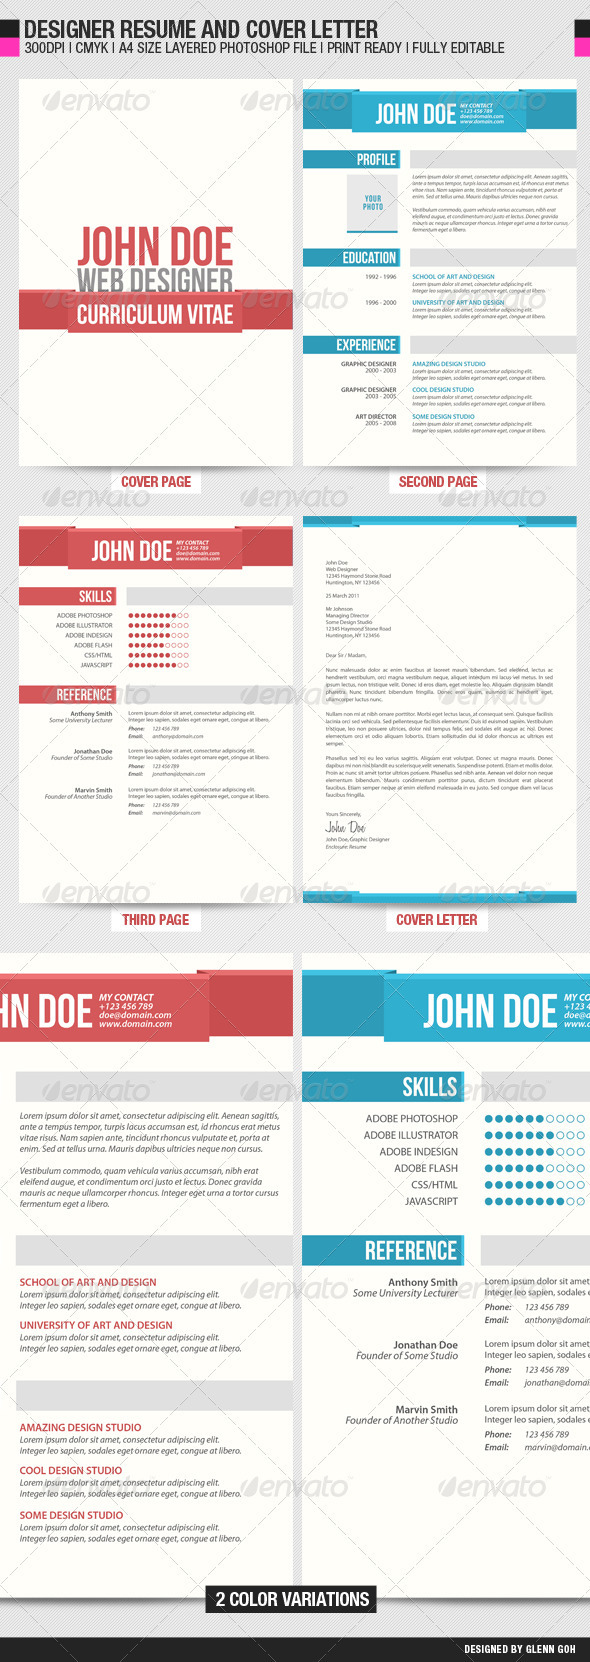 Designer Resume and Cover Letter